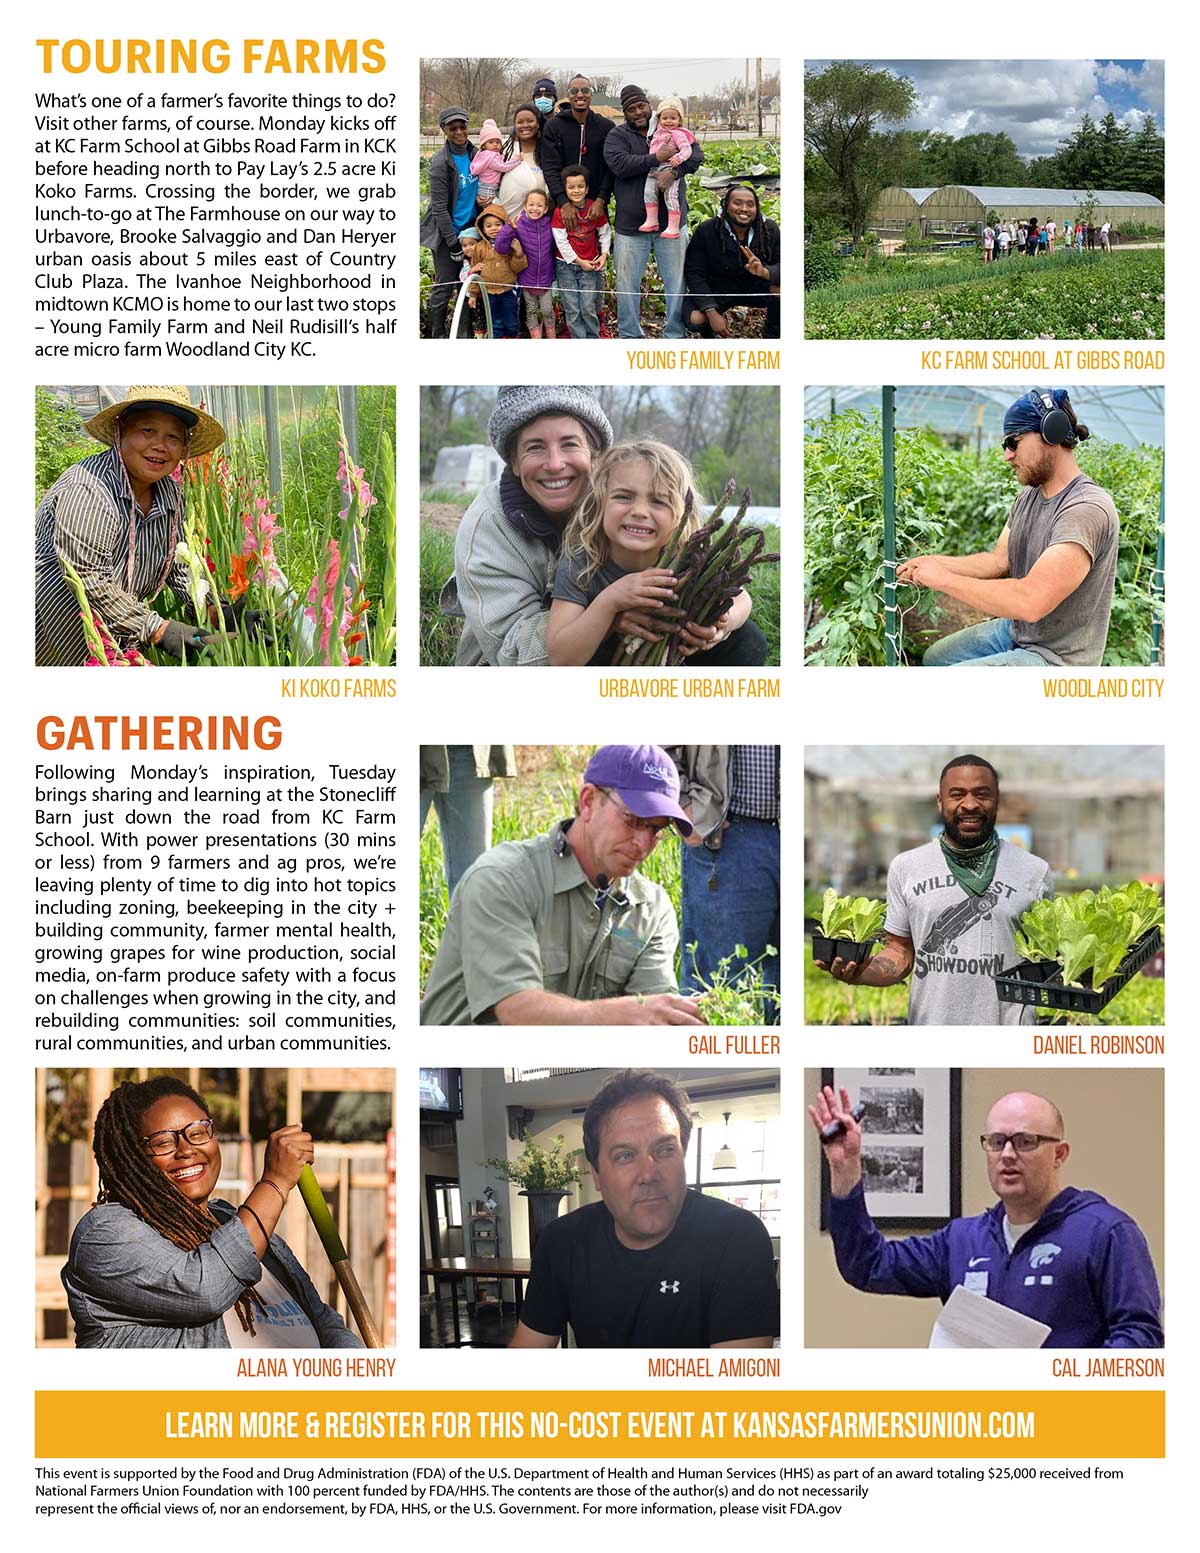 GROWING CONNECTIONS: Fall Farm and Food Conference